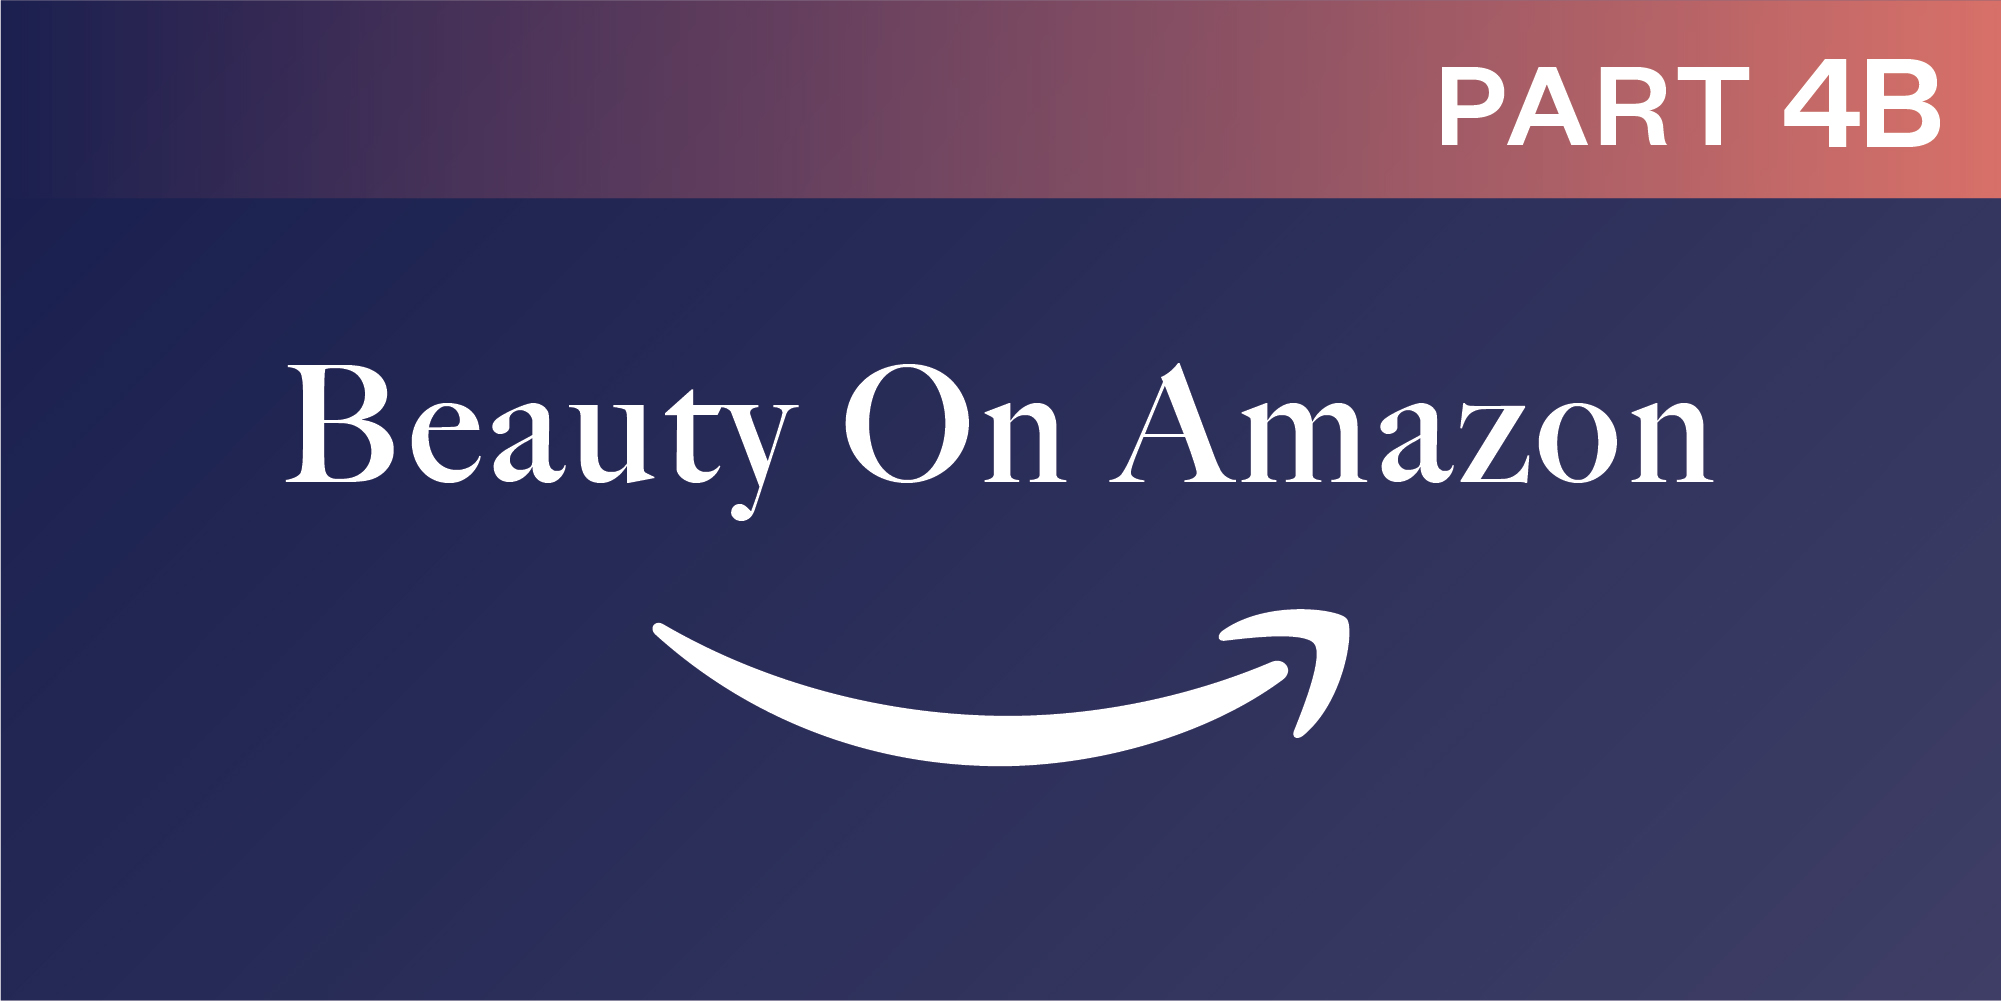 Beauty On Amazon Part 4B: The Highs And Lows Of Selling On The Massive E-Tailer As An Emerging Beauty Brand